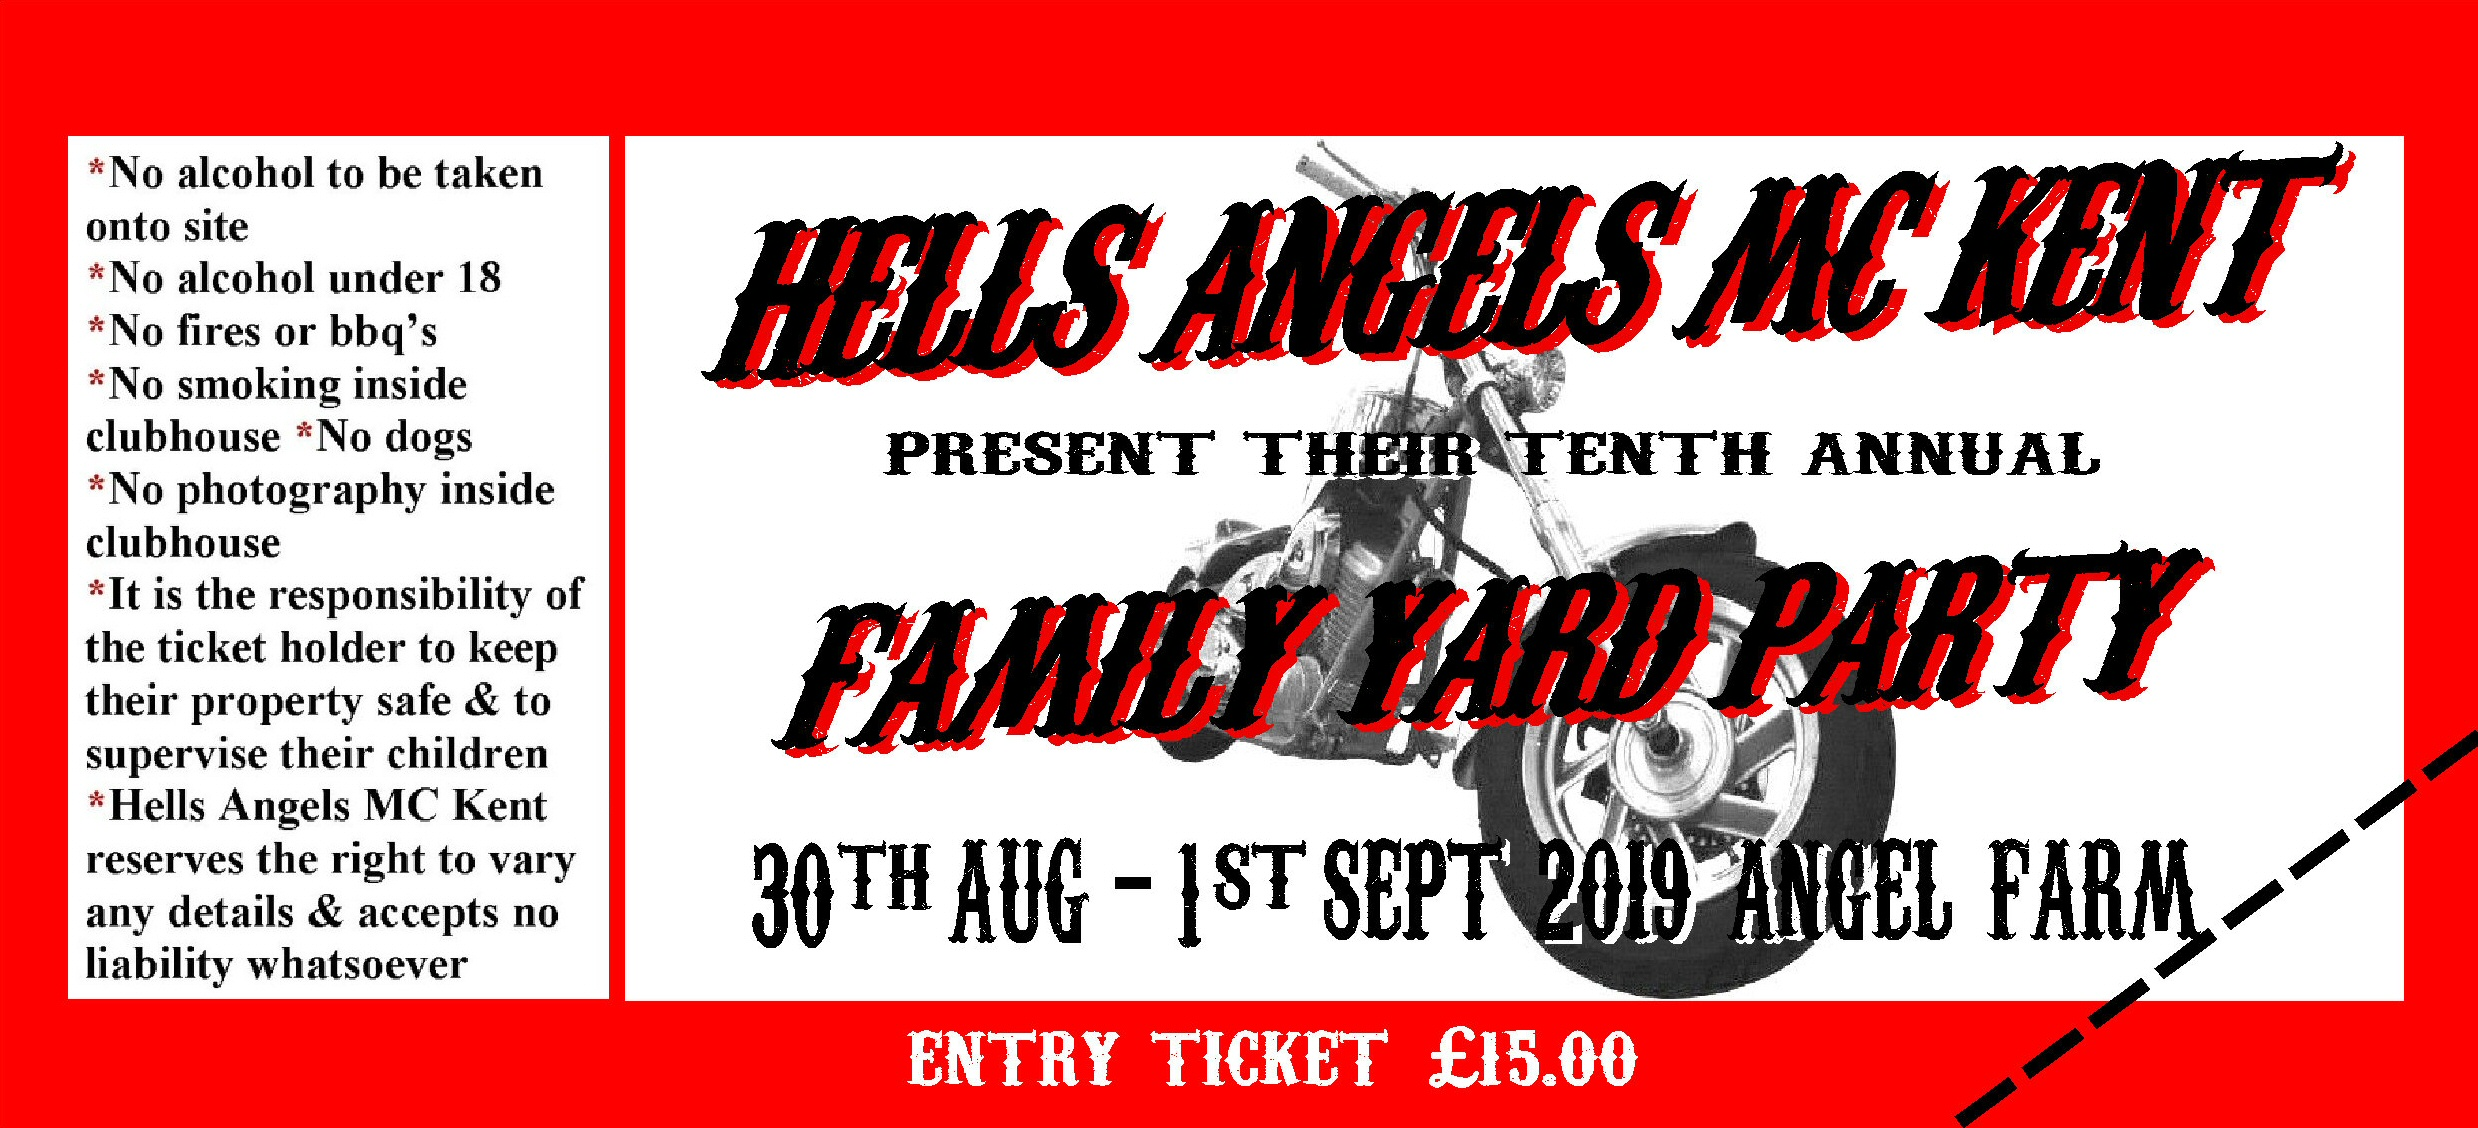 Property Of Hells Angels